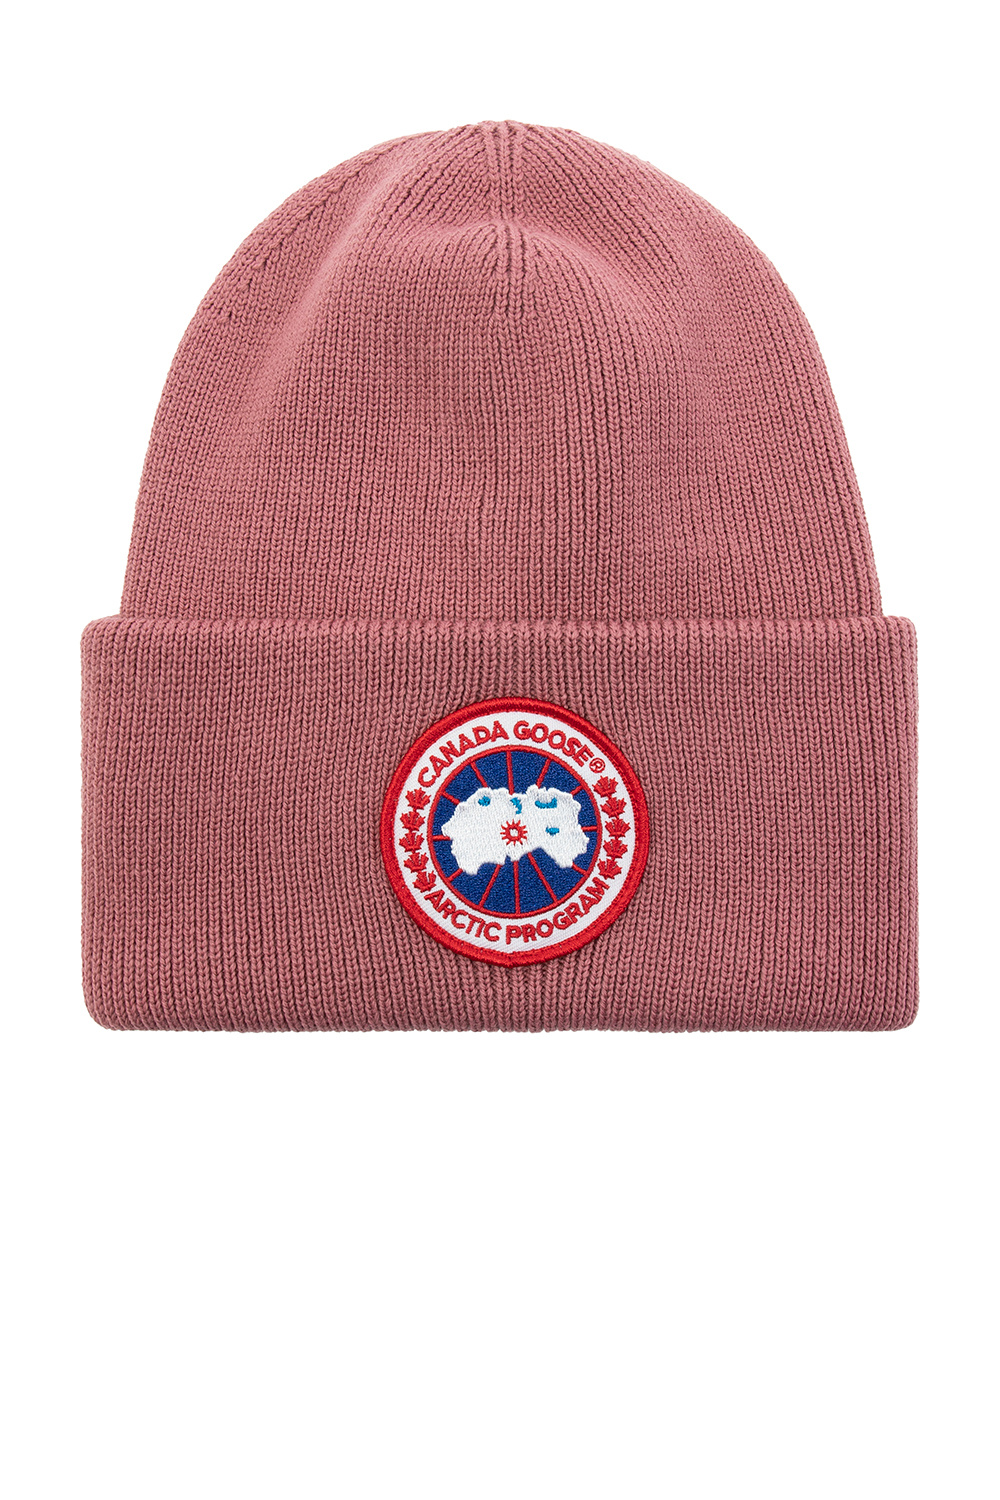 Canada Goose Wool hat